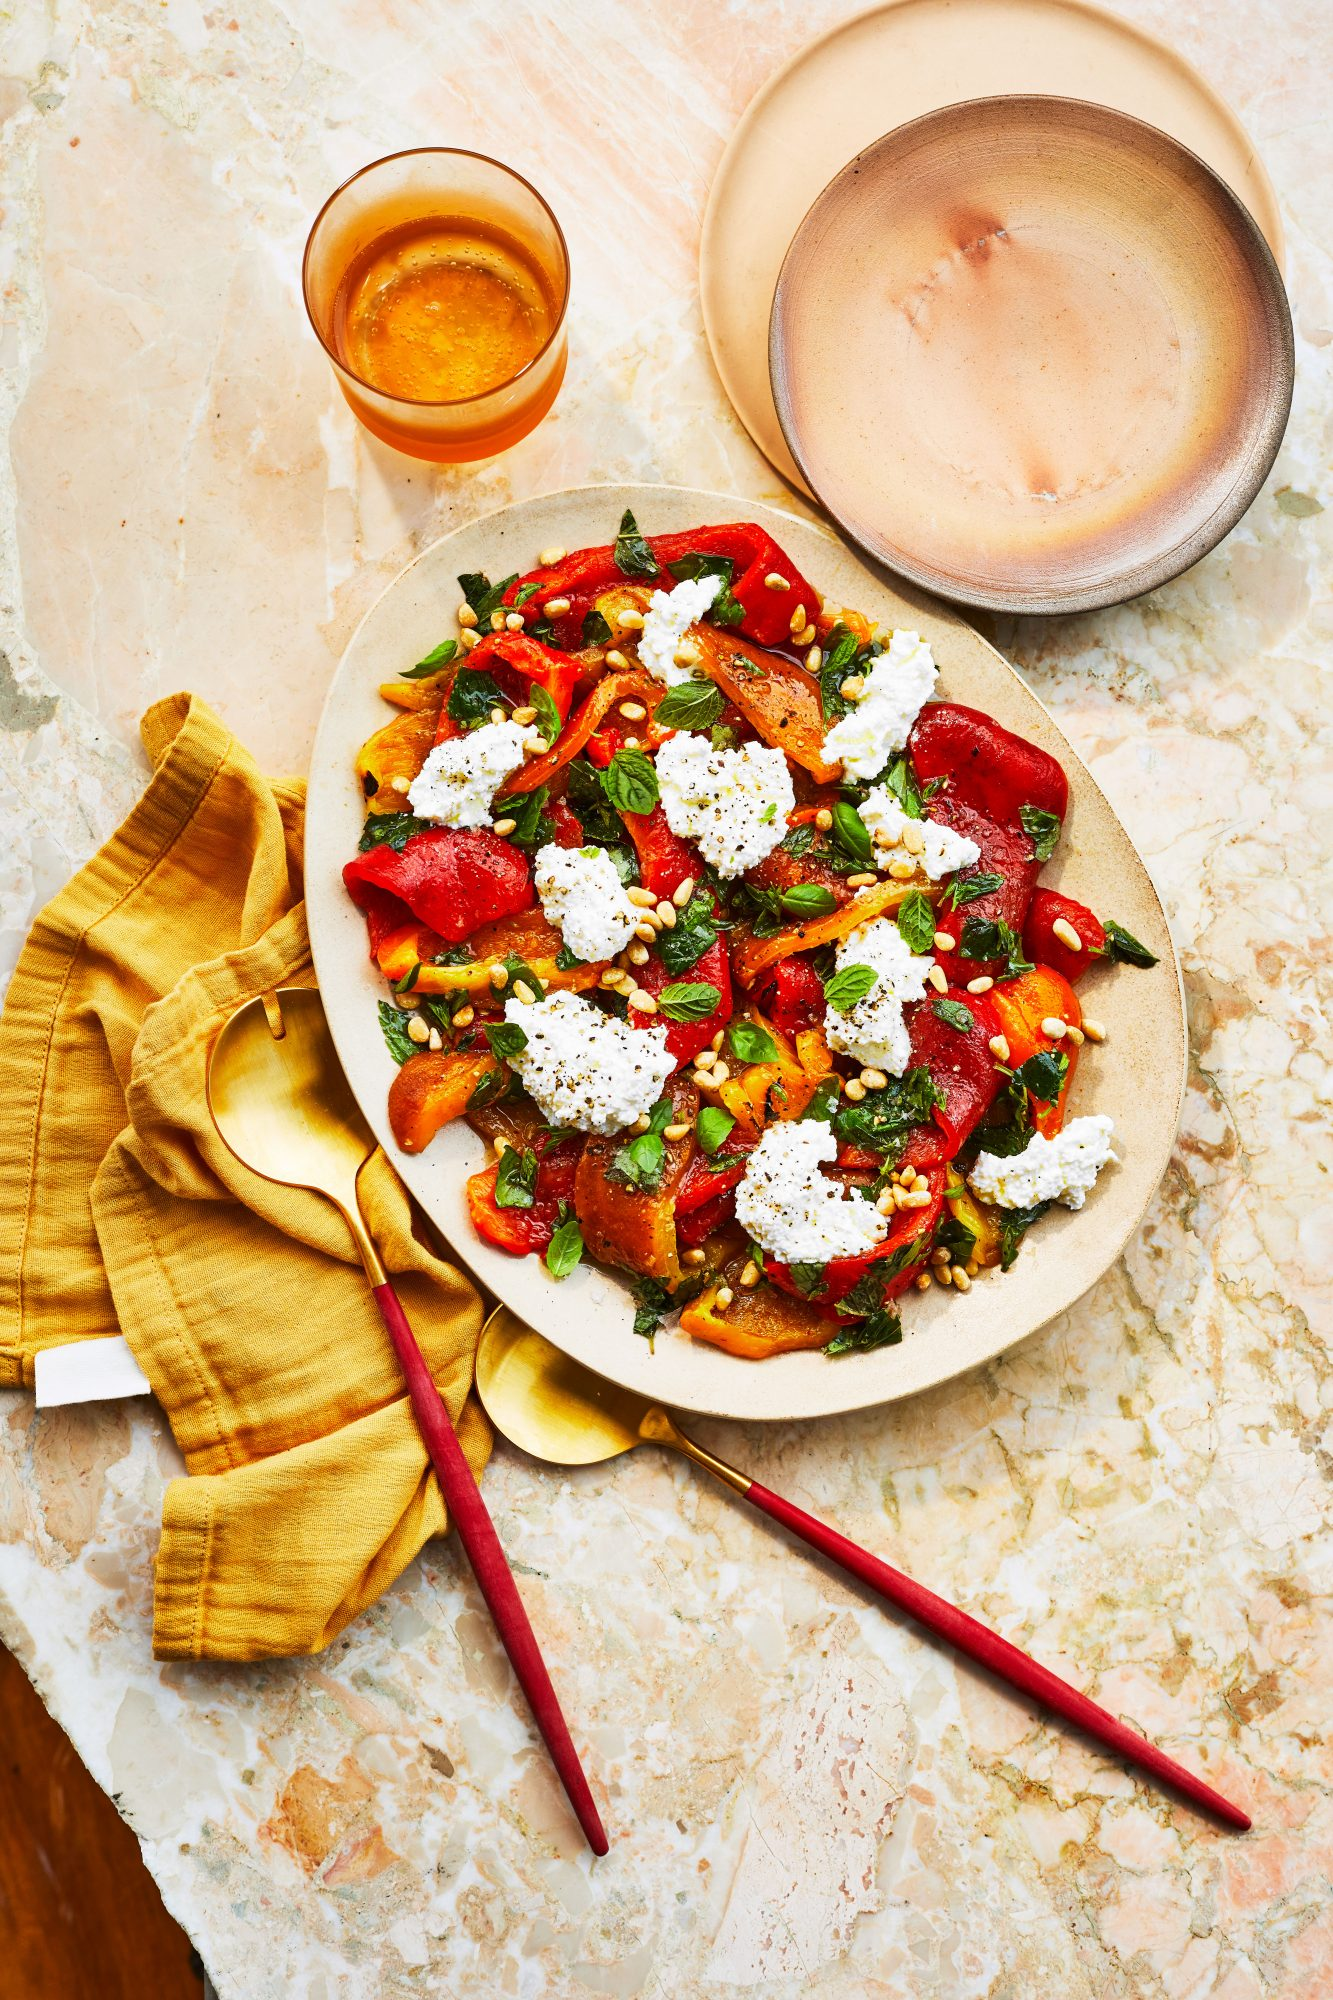 Grilled Sweet Pepper Salad With Ricotta And Summer Herbs